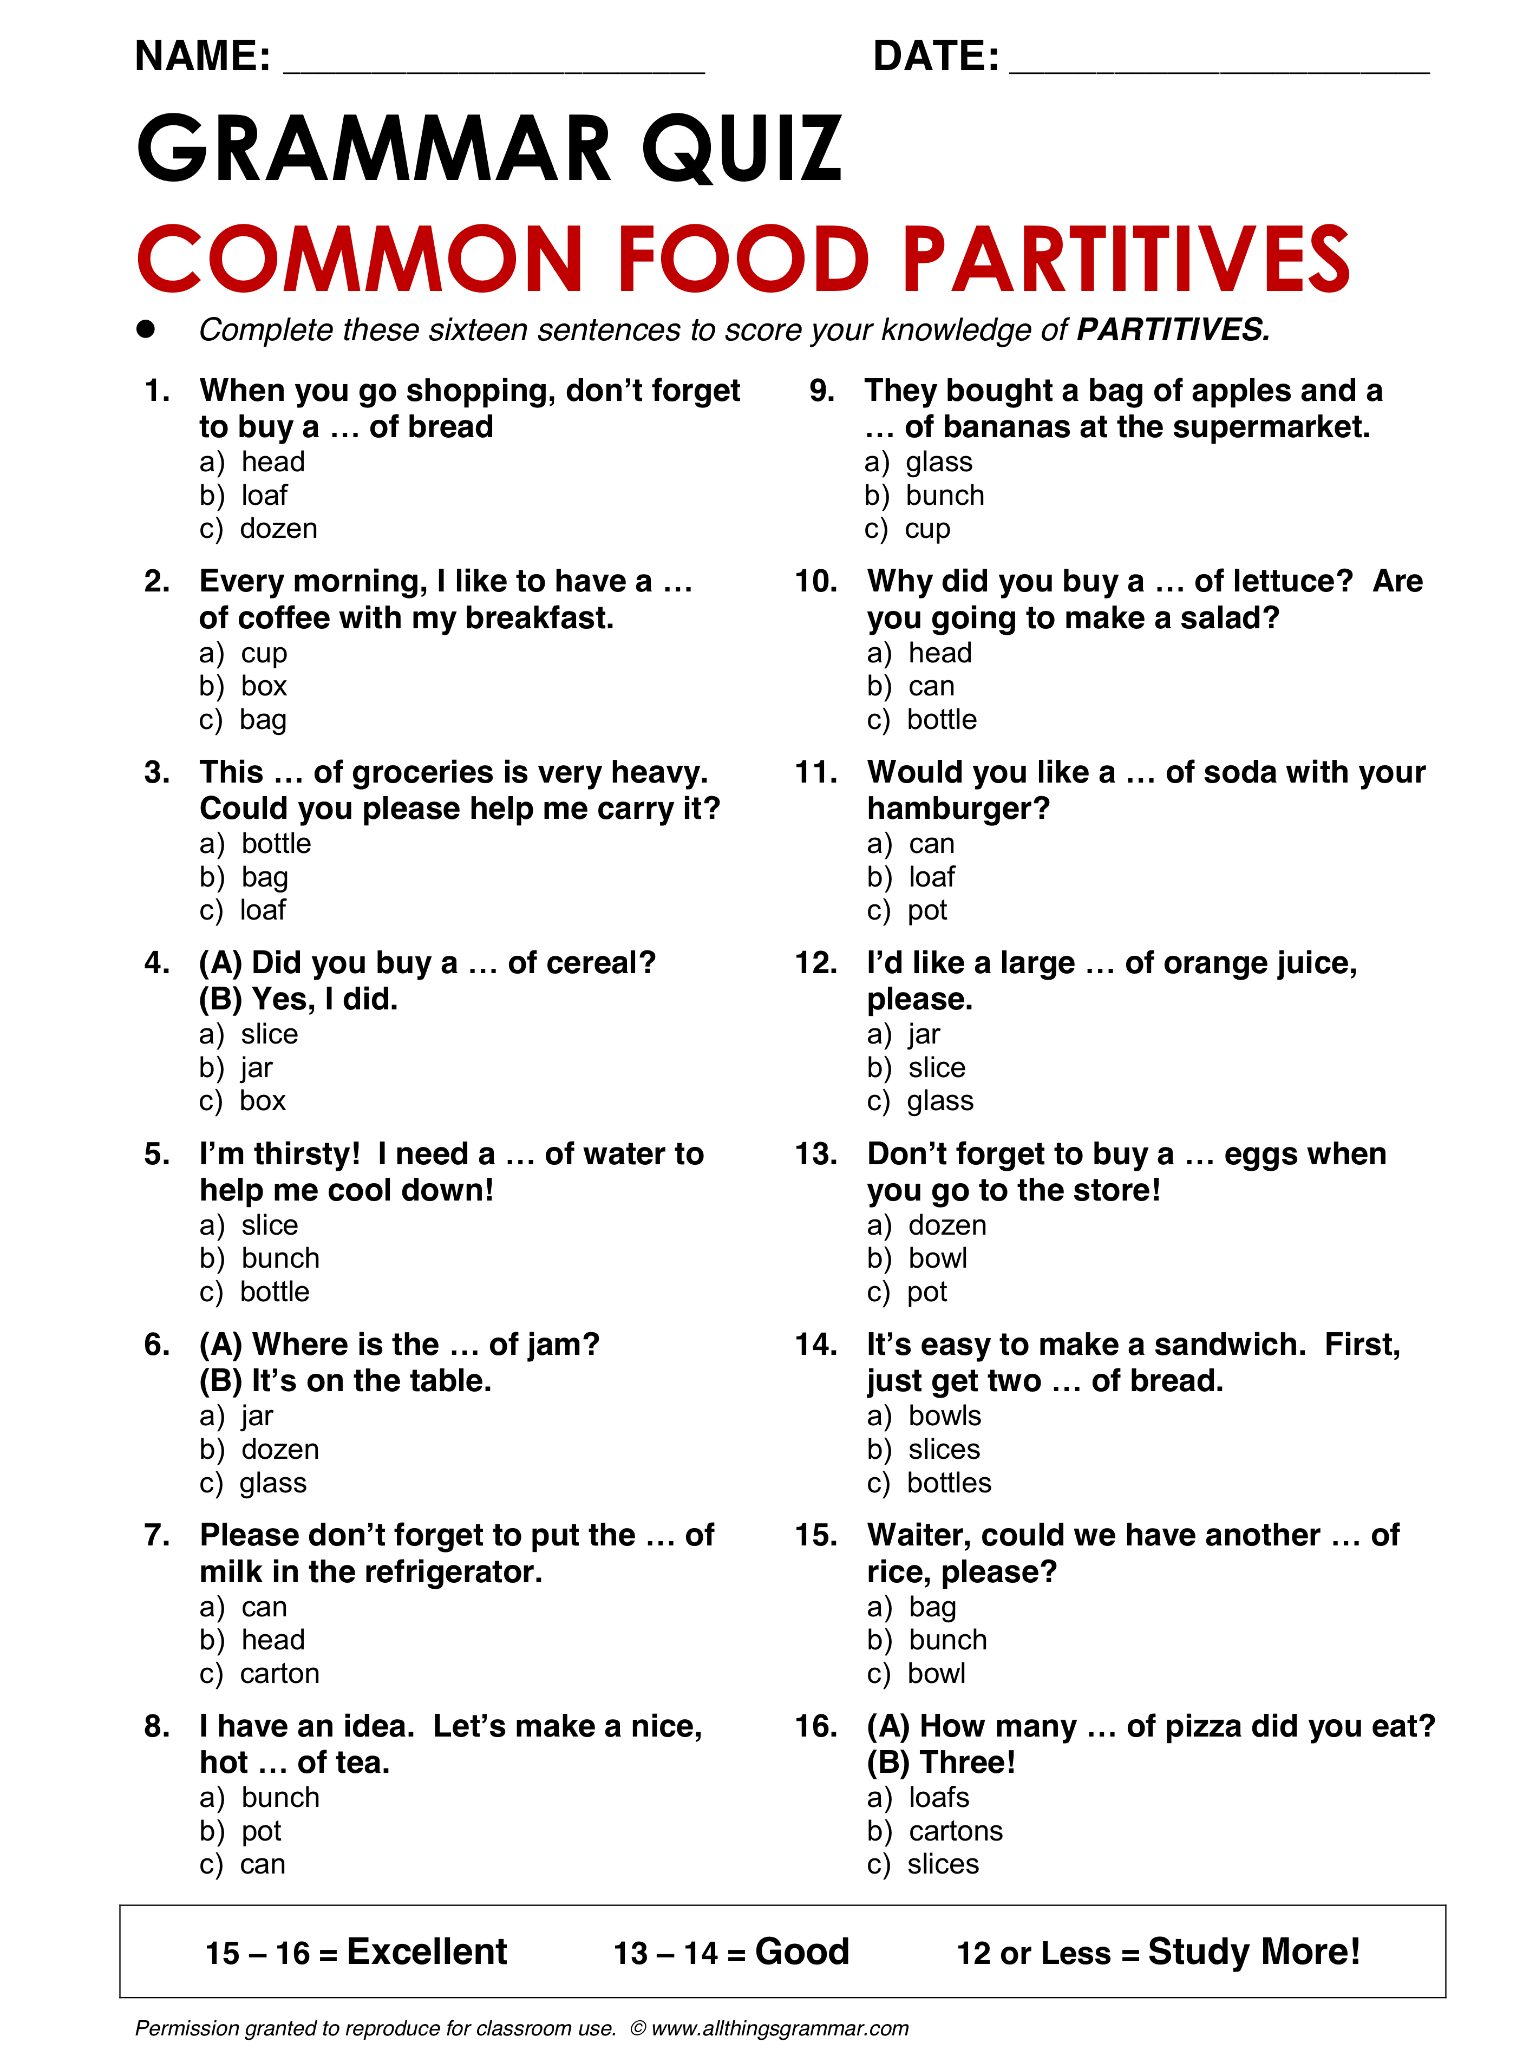 English Grammar Common Food Partitives